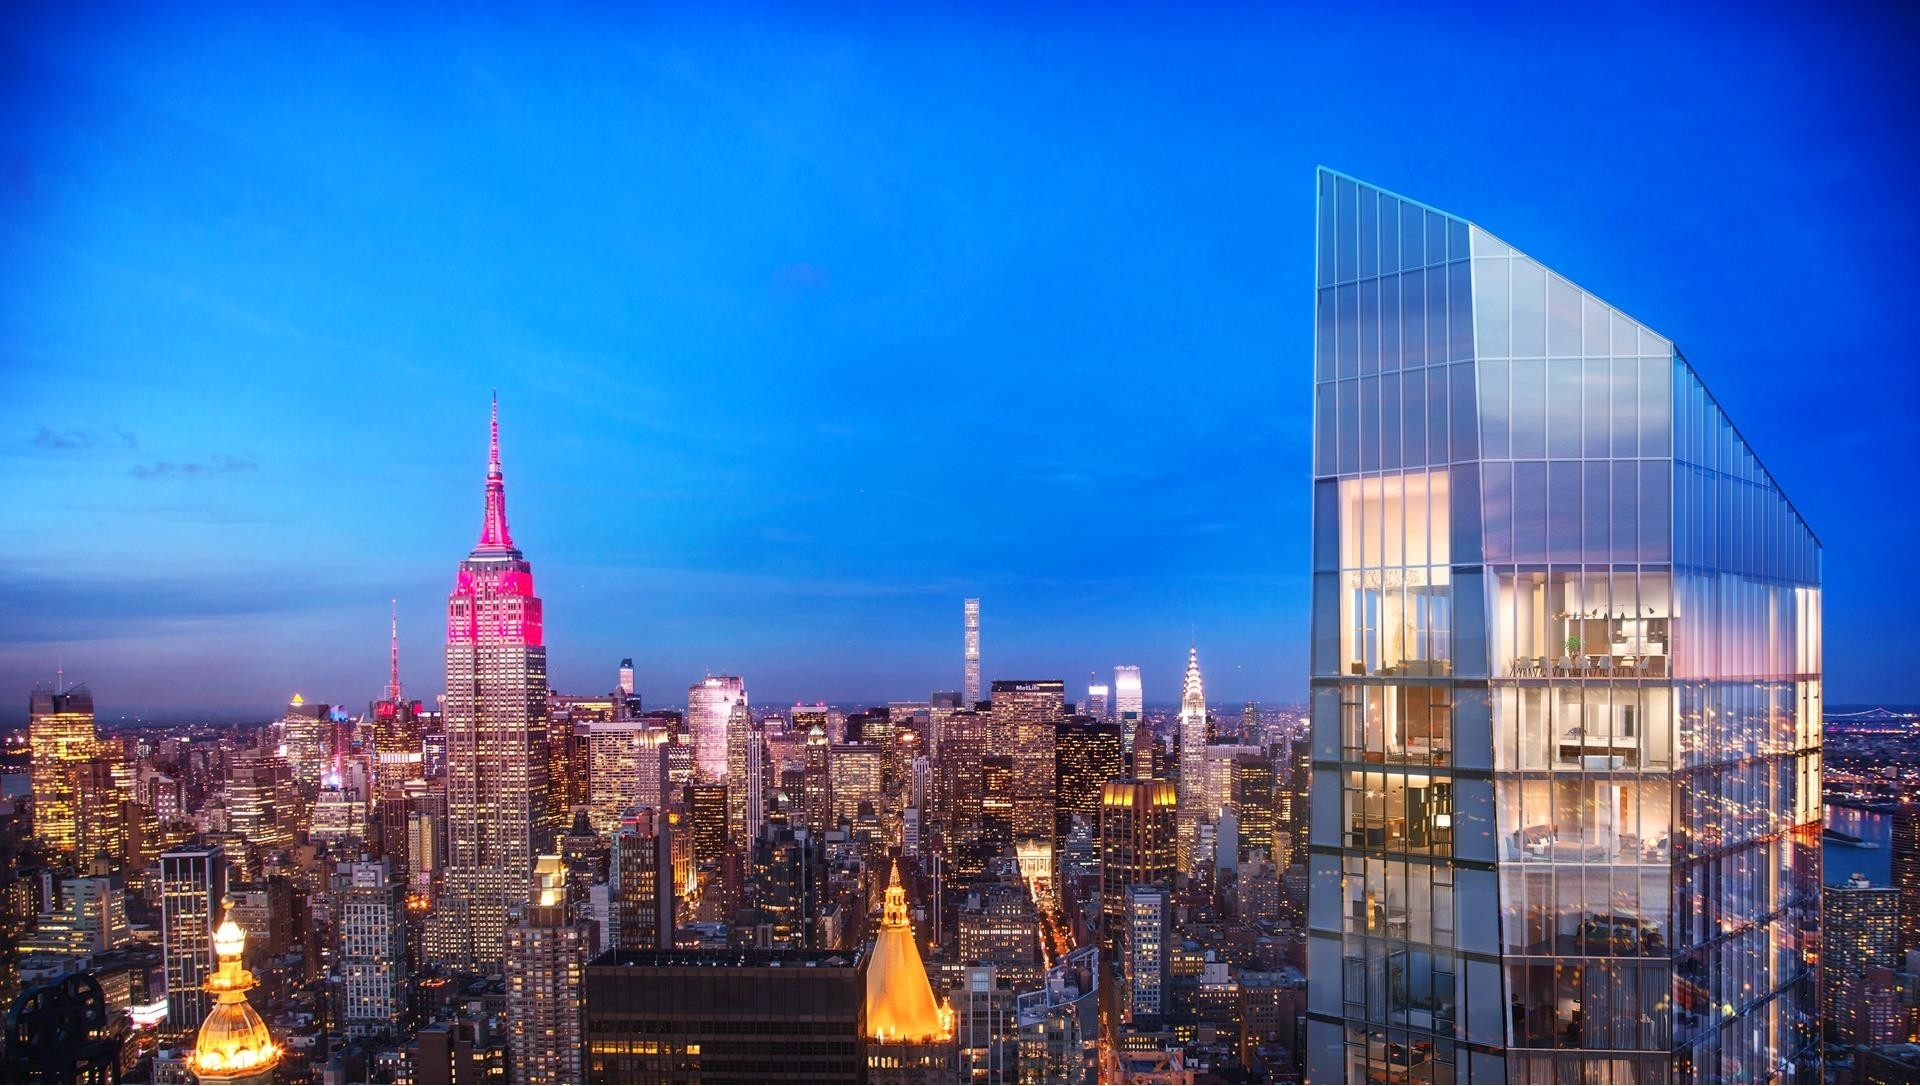 Condominium at Madison Square Park Tower, 45 East 22nd St, PHAB New York